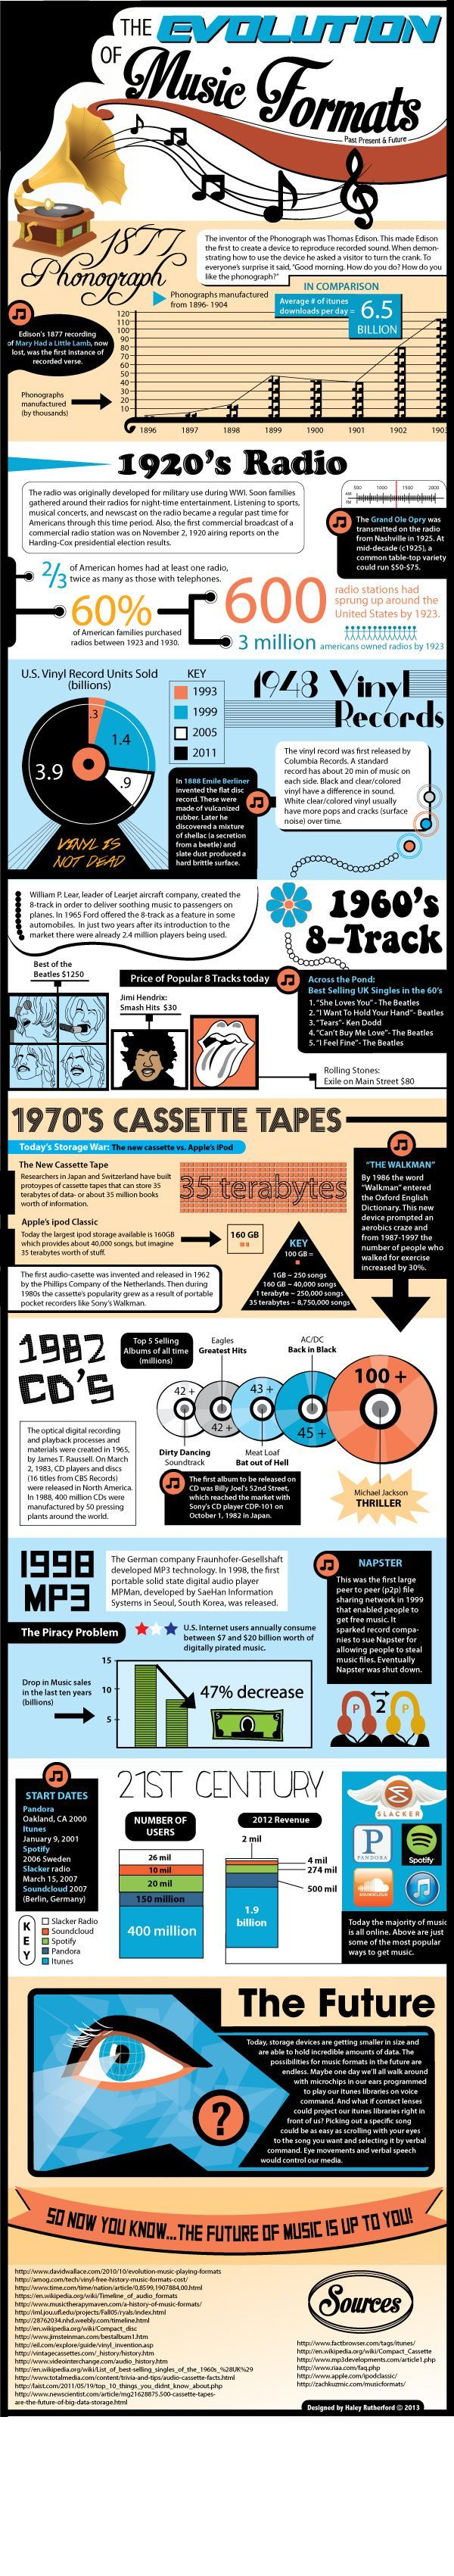 The Evolution of Music Formats. #music http://www.pinterest.com/TheHitman14/musical-odds-ends/